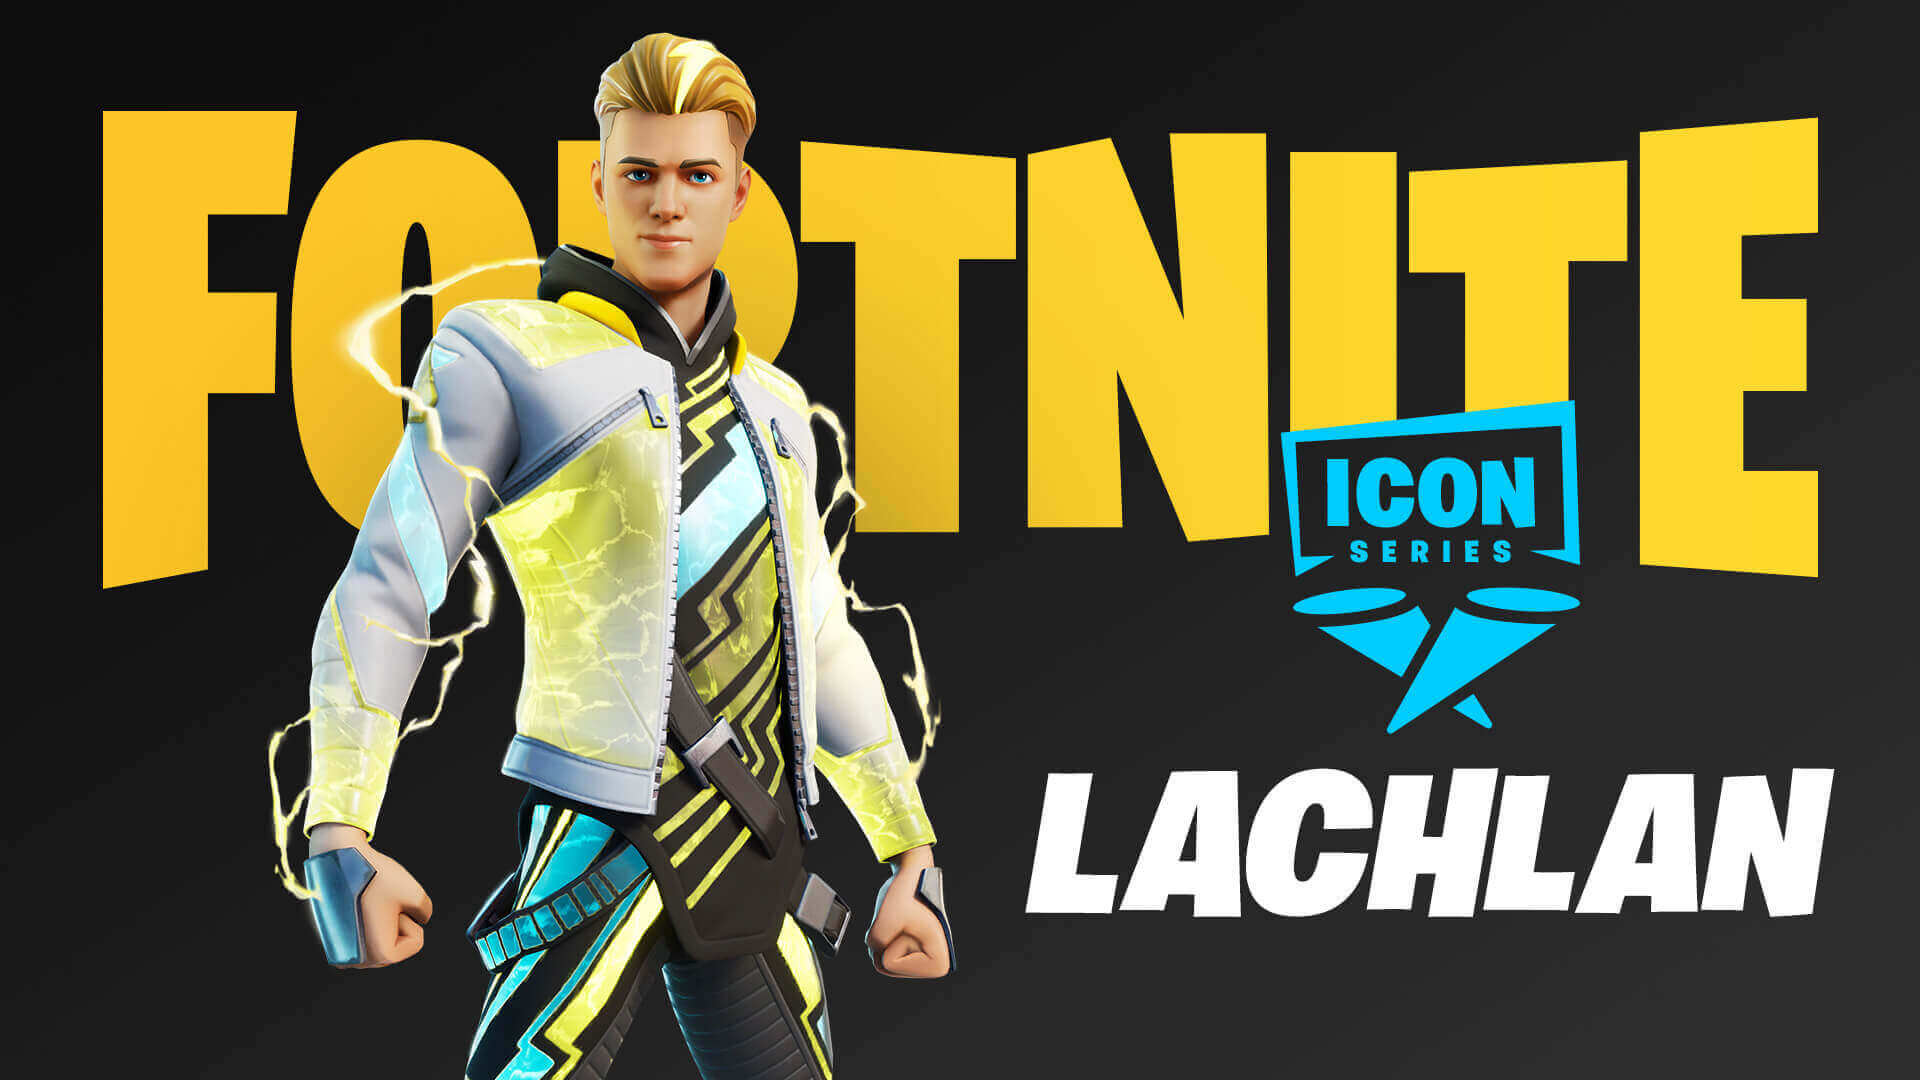 Lachlan Icon Series skin arrives November 12th